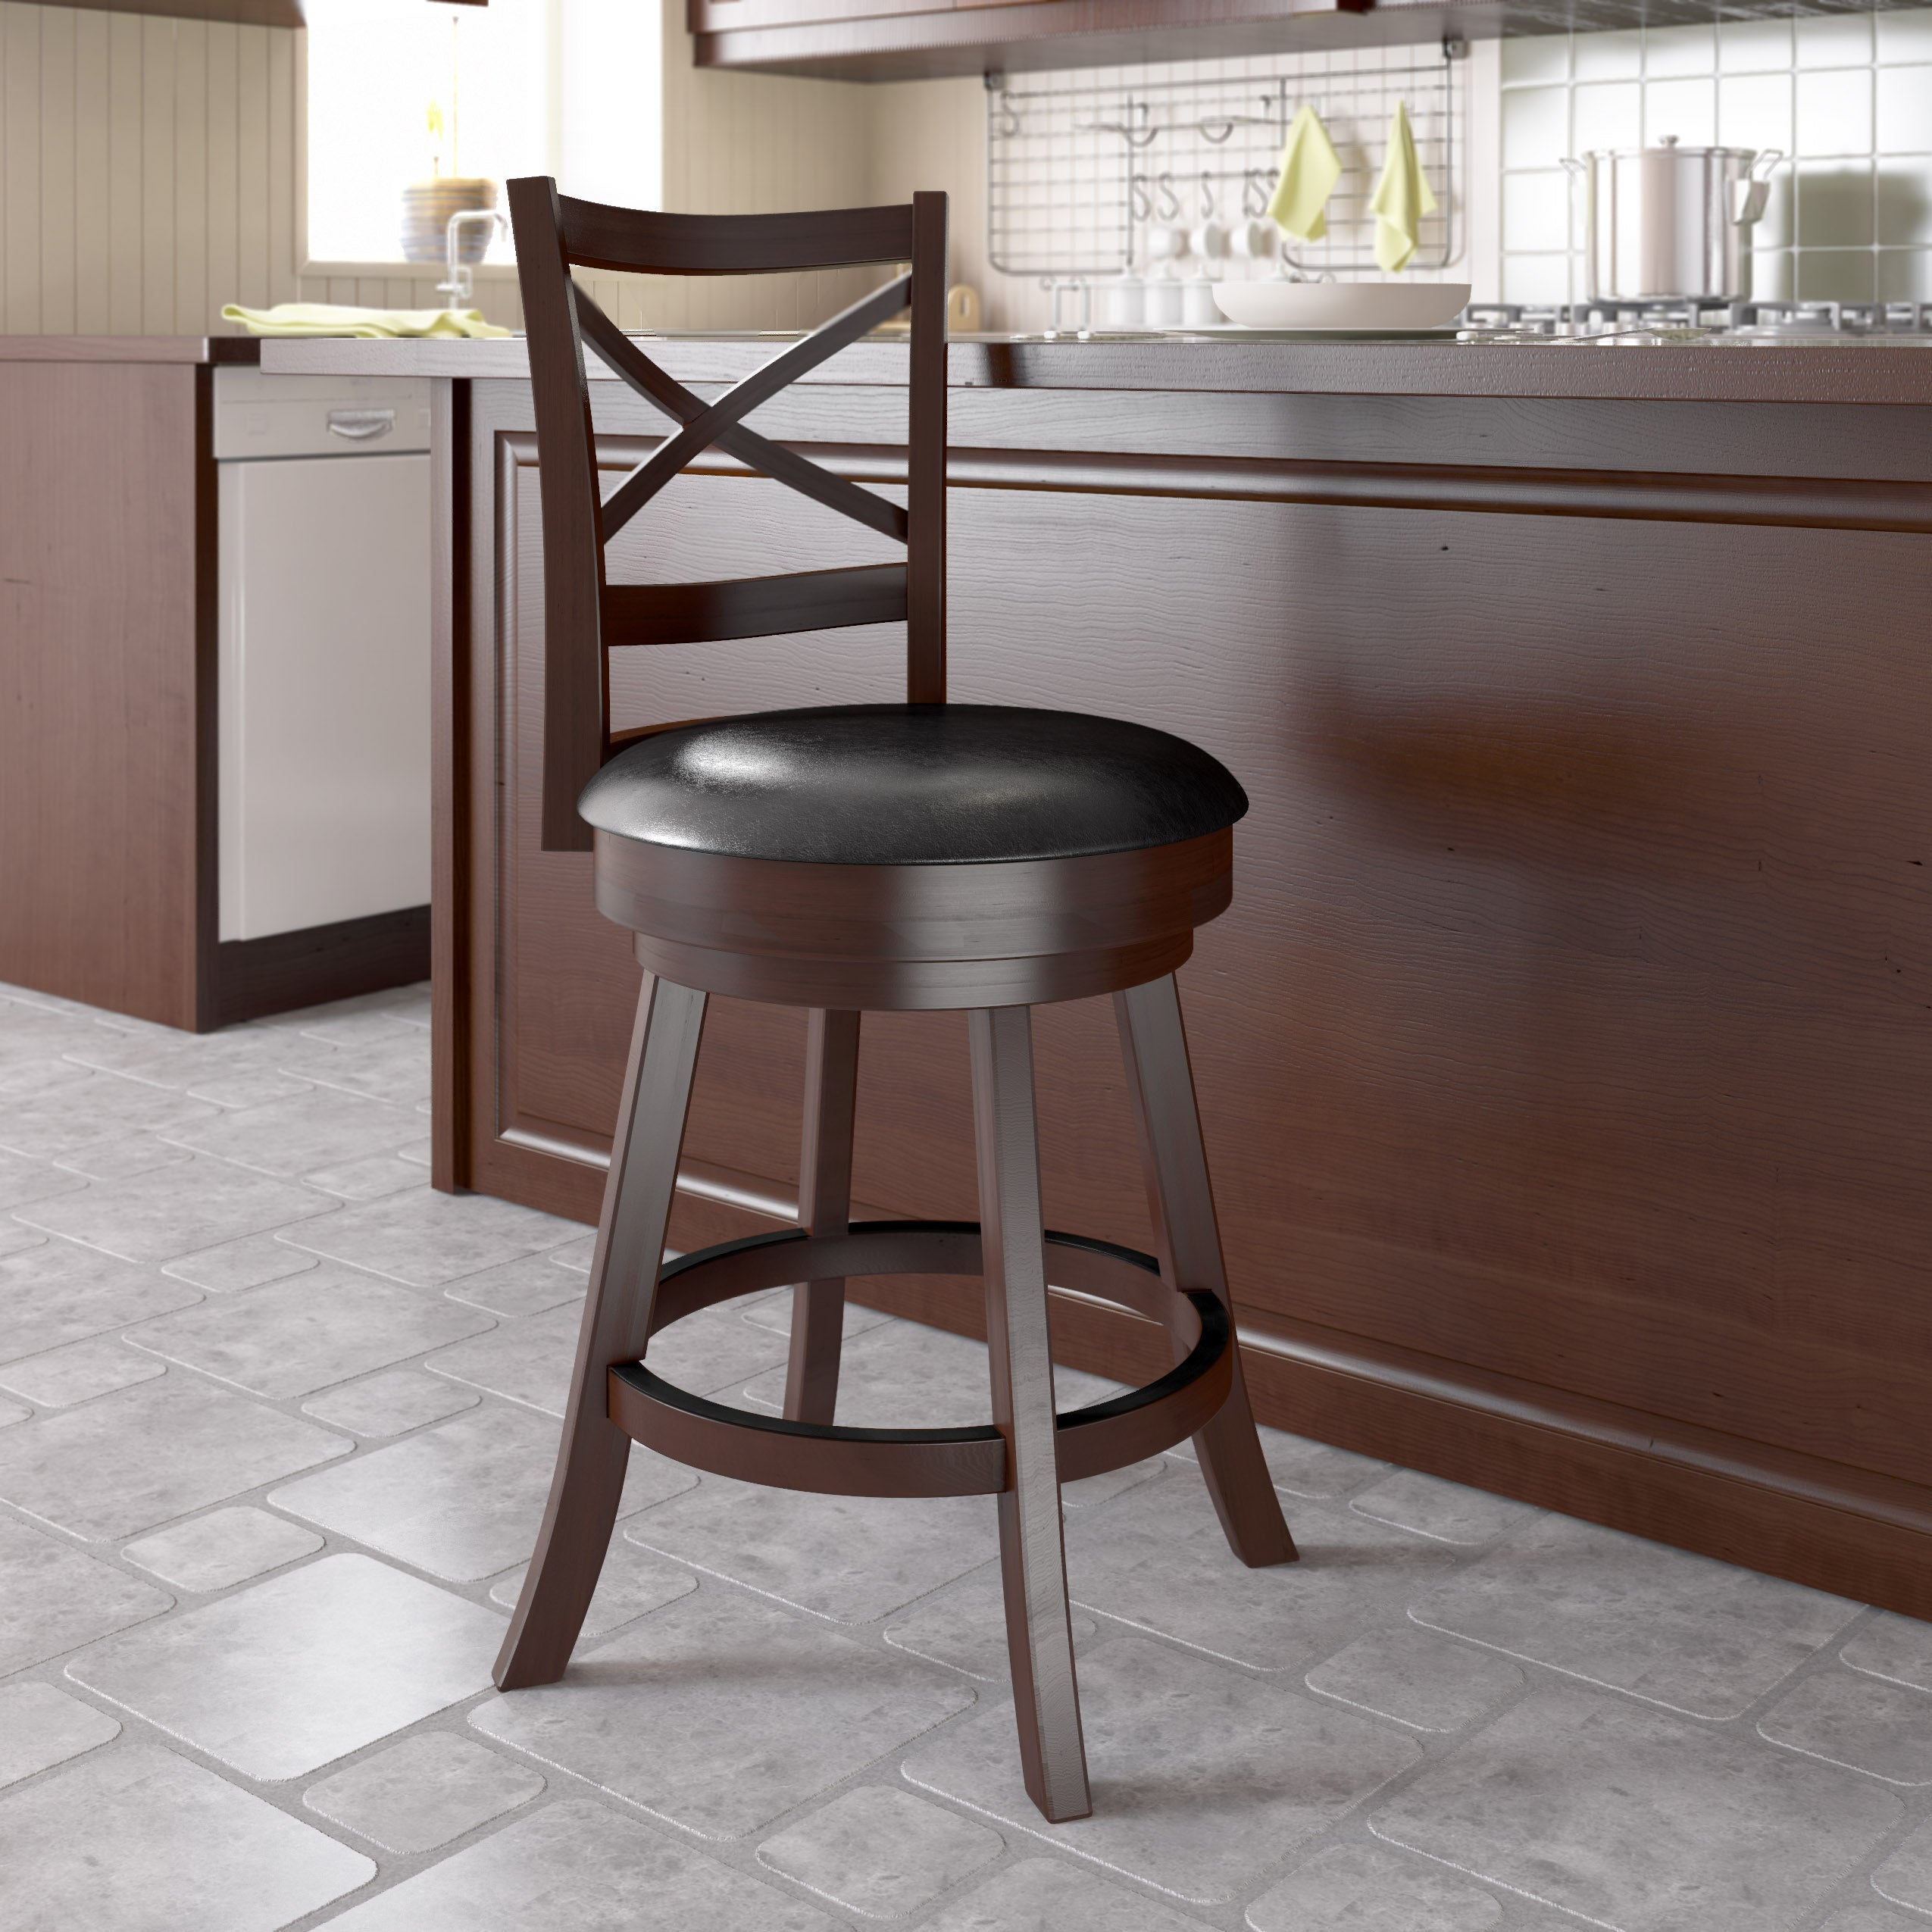 Swell Cross Back Counter Height Barstool In Espresso And Black Leatherette Clearance Spiritservingveterans Wood Chair Design Ideas Spiritservingveteransorg